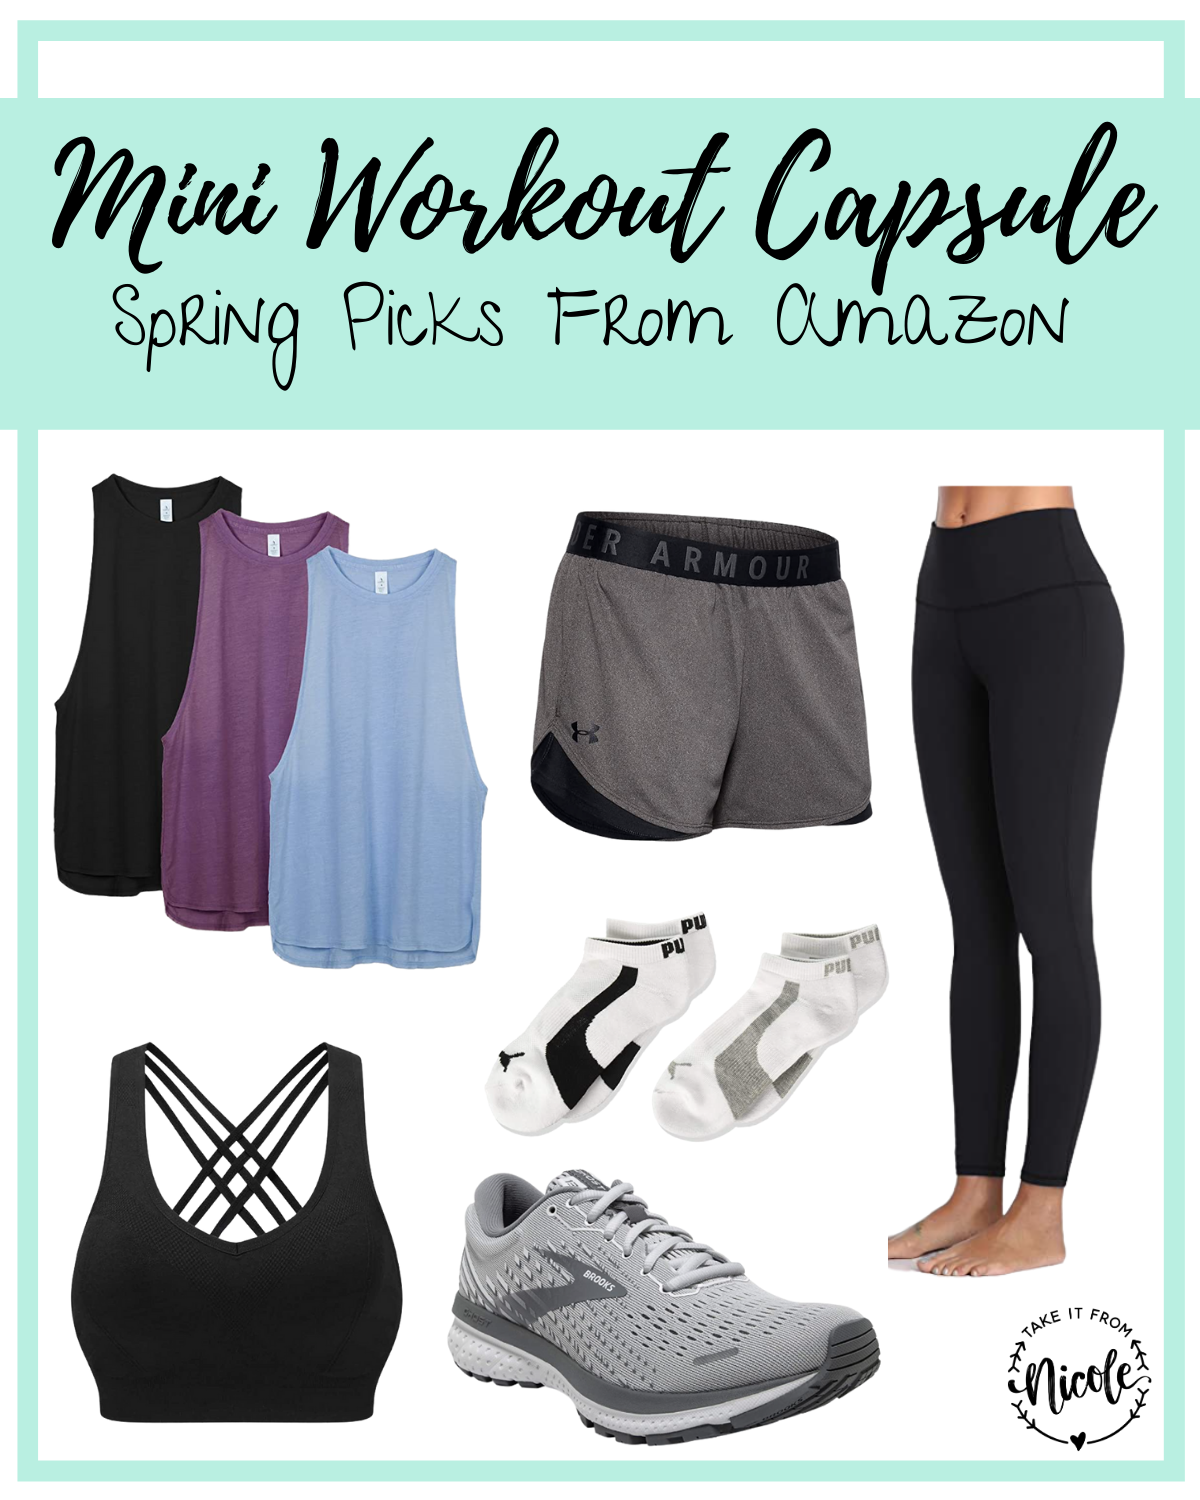 I put together this Mini Workout Wear Capsule Wardrobe to give your exercise gear a nice refresh for Spring. I also feel that new workout clothes are the perfect motivation to get me moving and crushing fitness goals at the gym. Each of these fashionable pieces will mix and match with the others and all are available on Amazon.